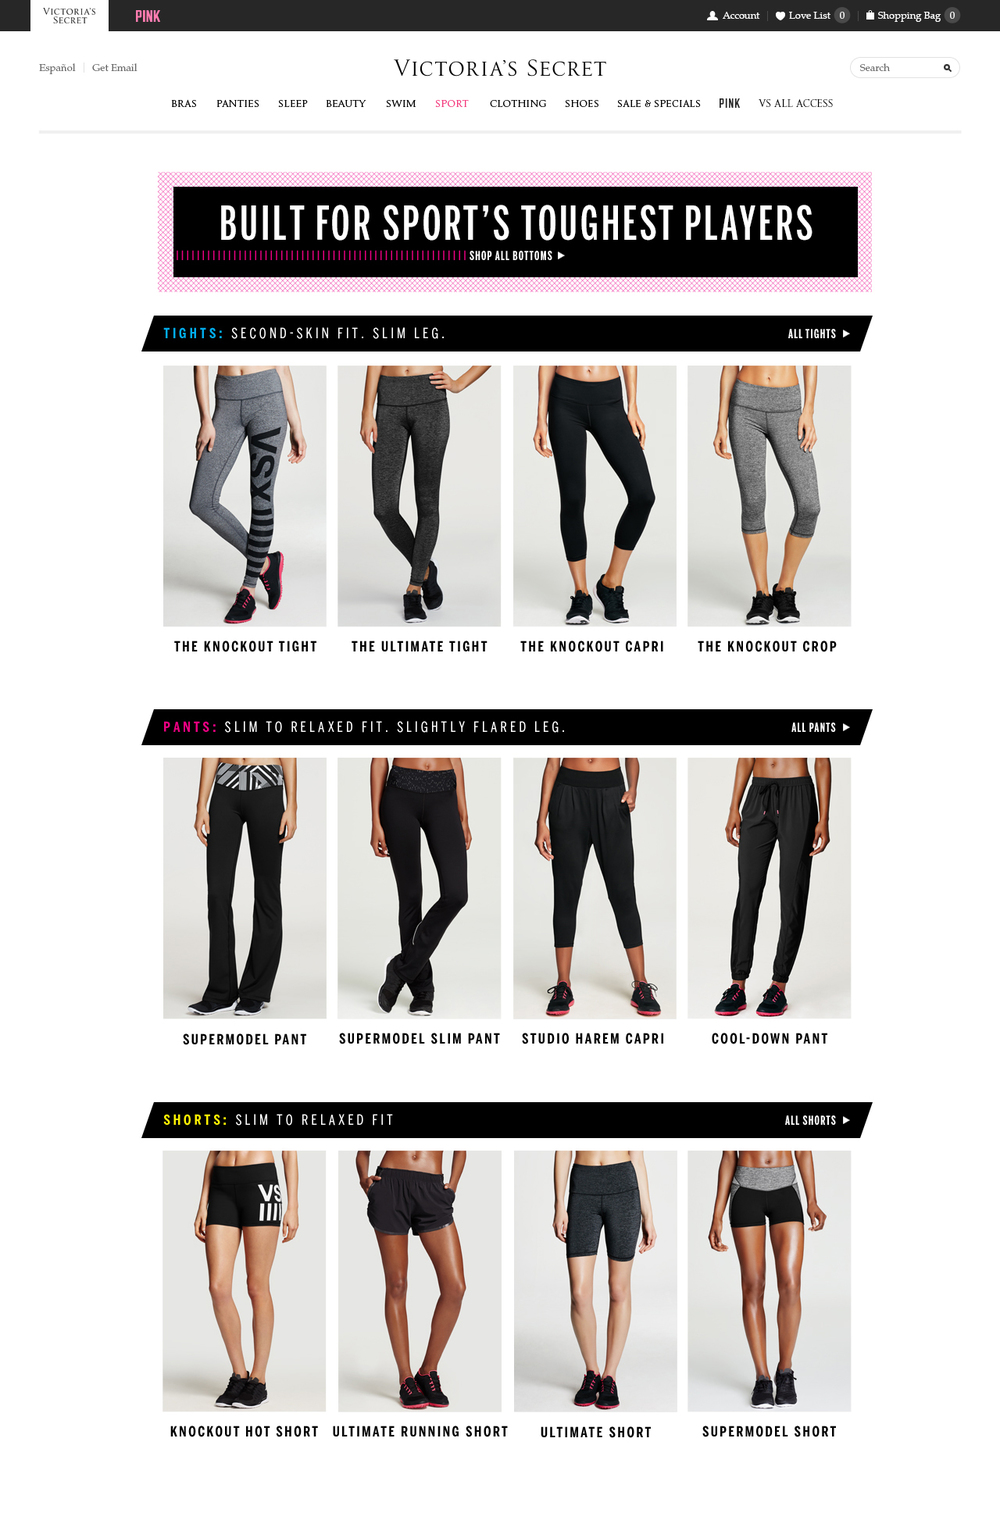 BOS_Work_VSD_012215-sport-performance-bottoms.jpg